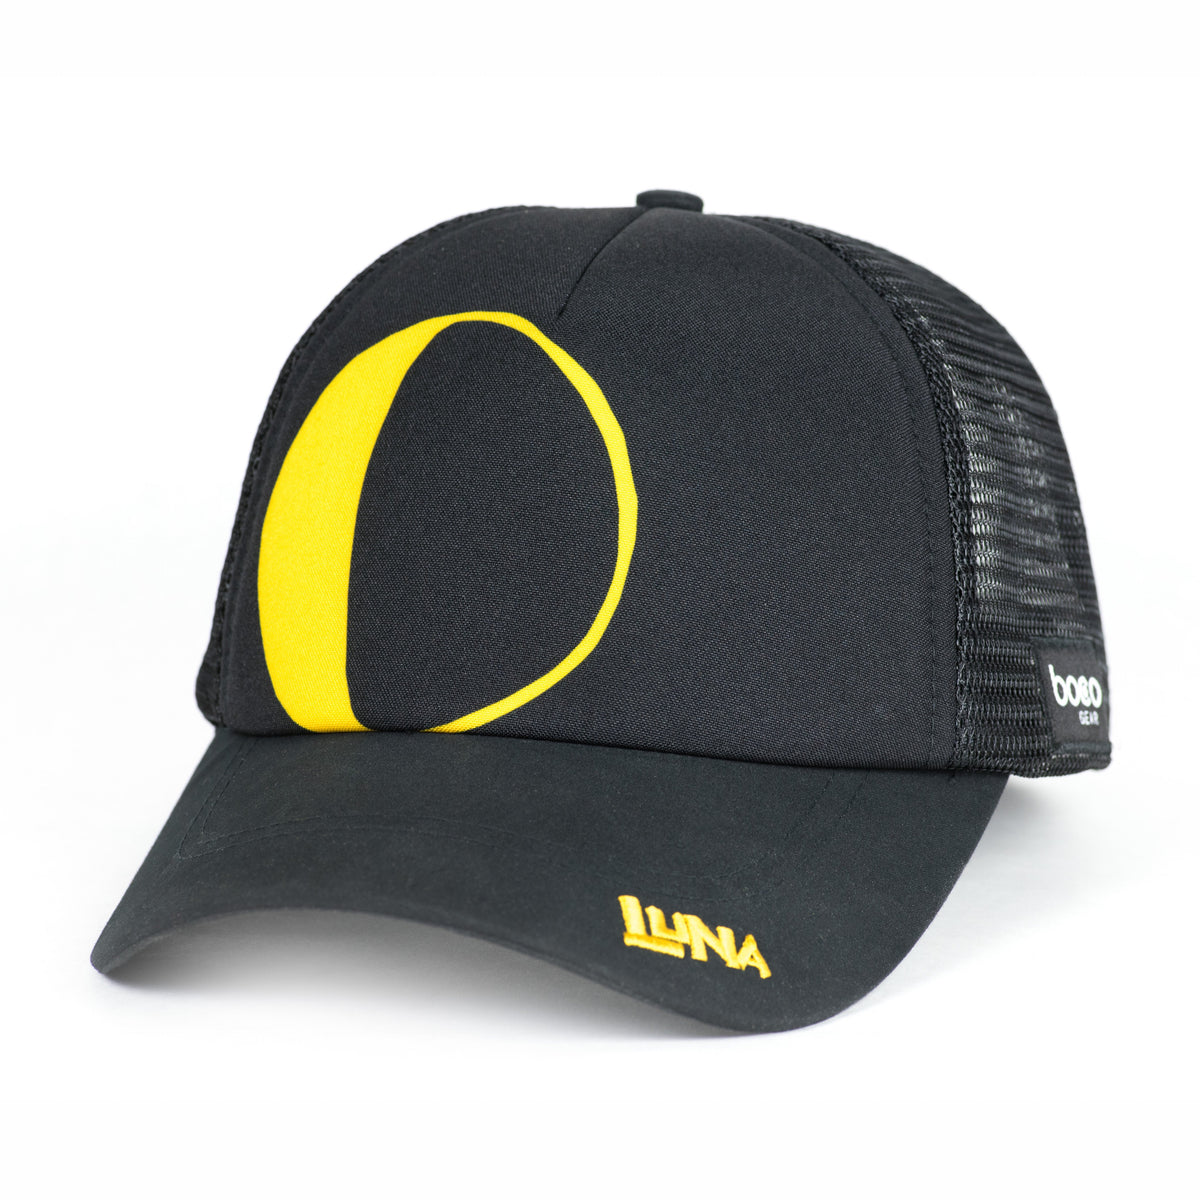 LUNA Sandals x Boco Technical Trucker Hat